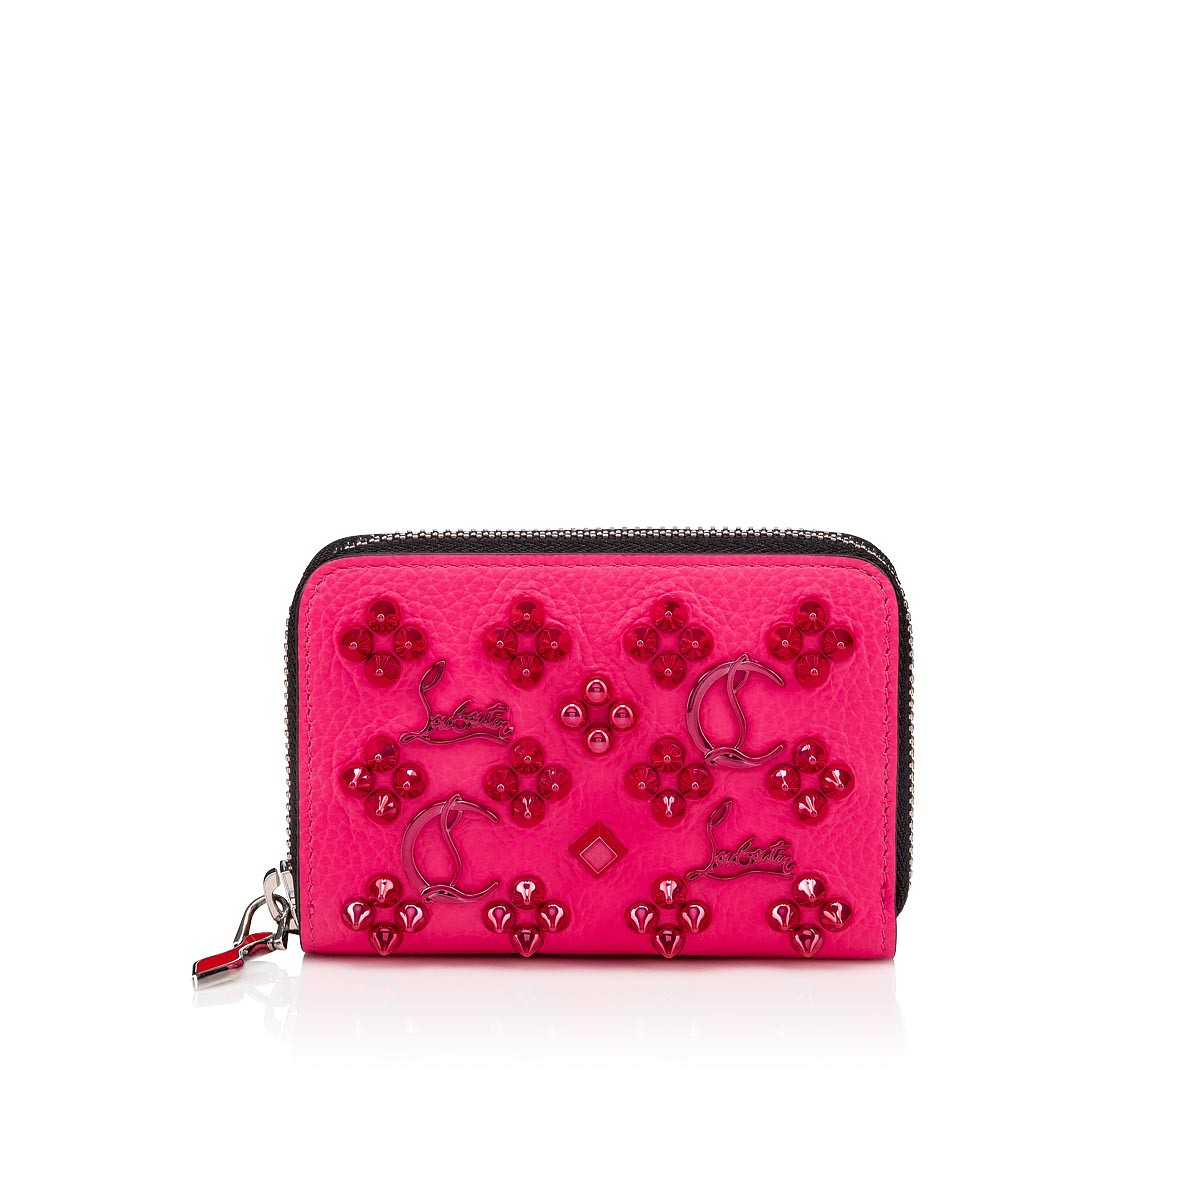 Small Leather Goods - W Panettone Coin Purse - Christian Louboutin